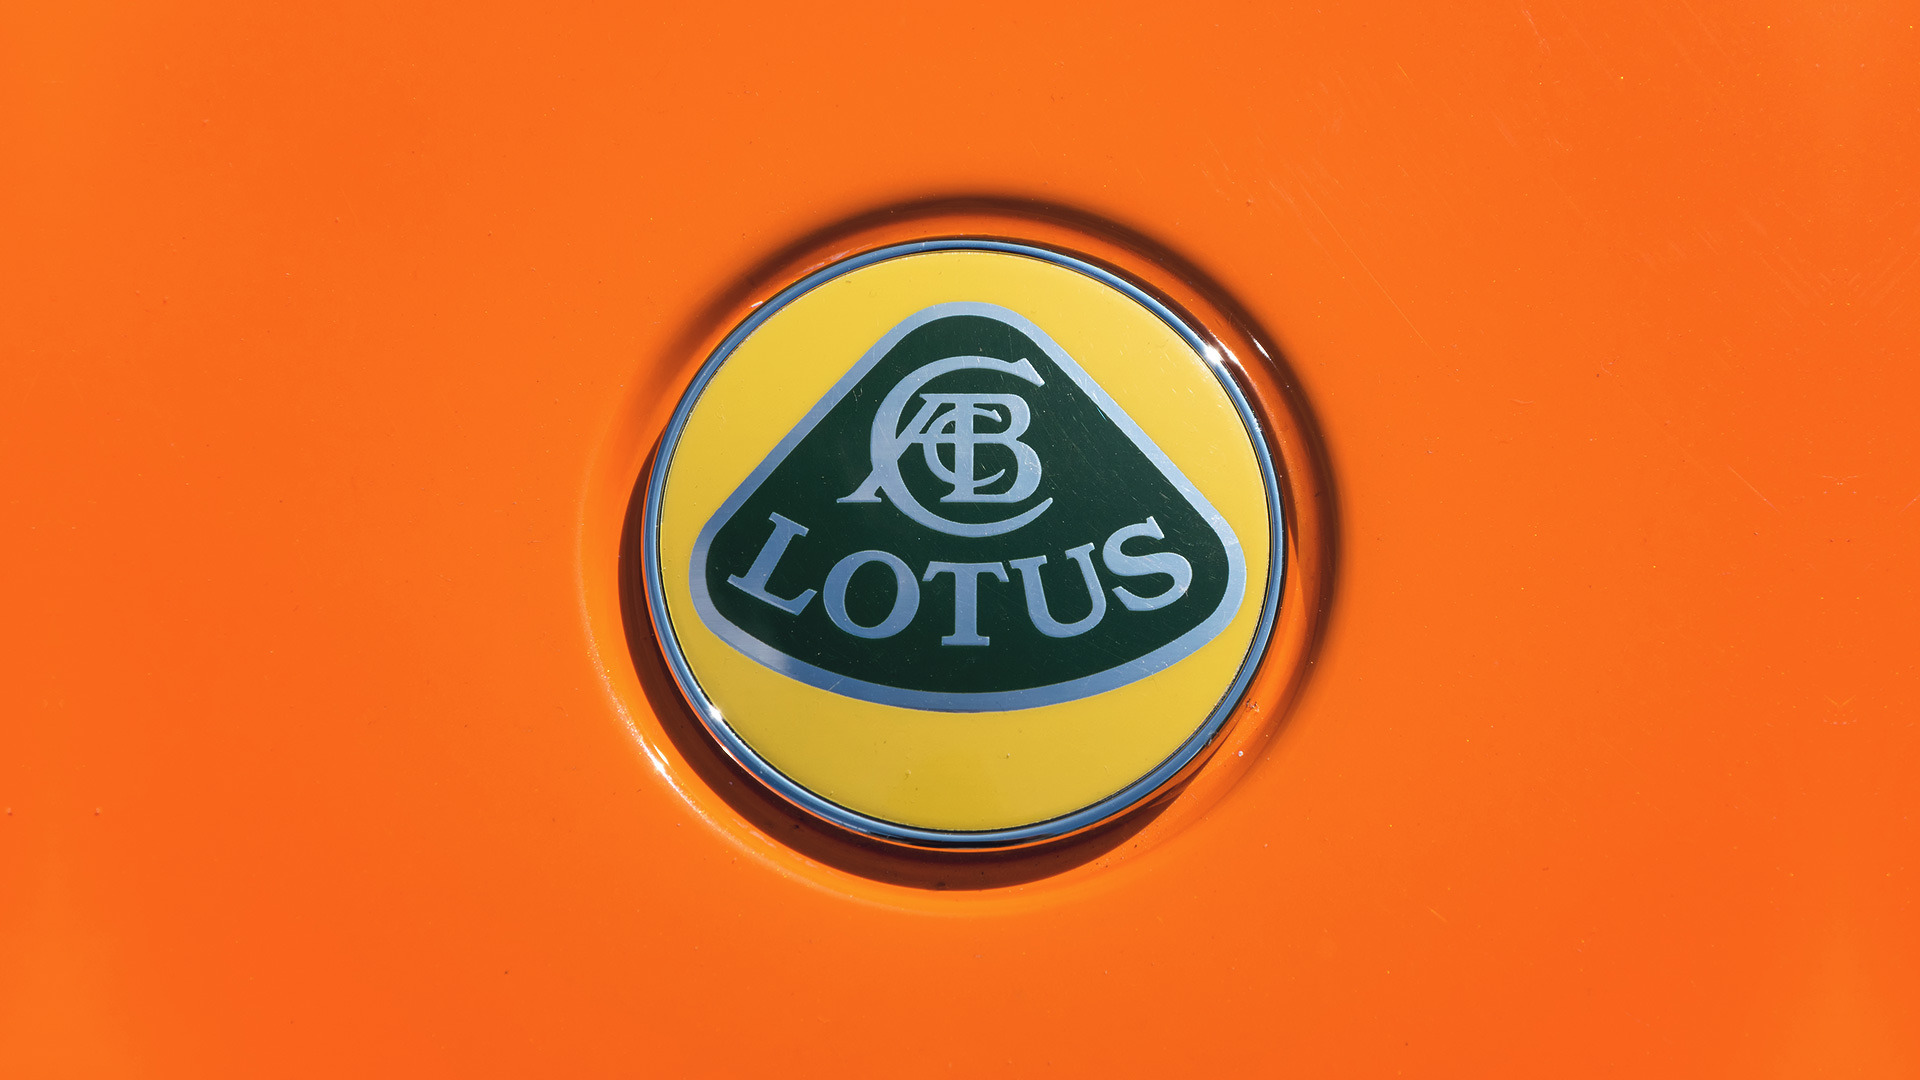 geely car official website with Lotus on 2007 Saturn Ion moreover Land Rover Logo furthermore Kandi 1 additionally Mazda Logo together with Geely Emgrand Gt Car Made By Belgee i 5313.